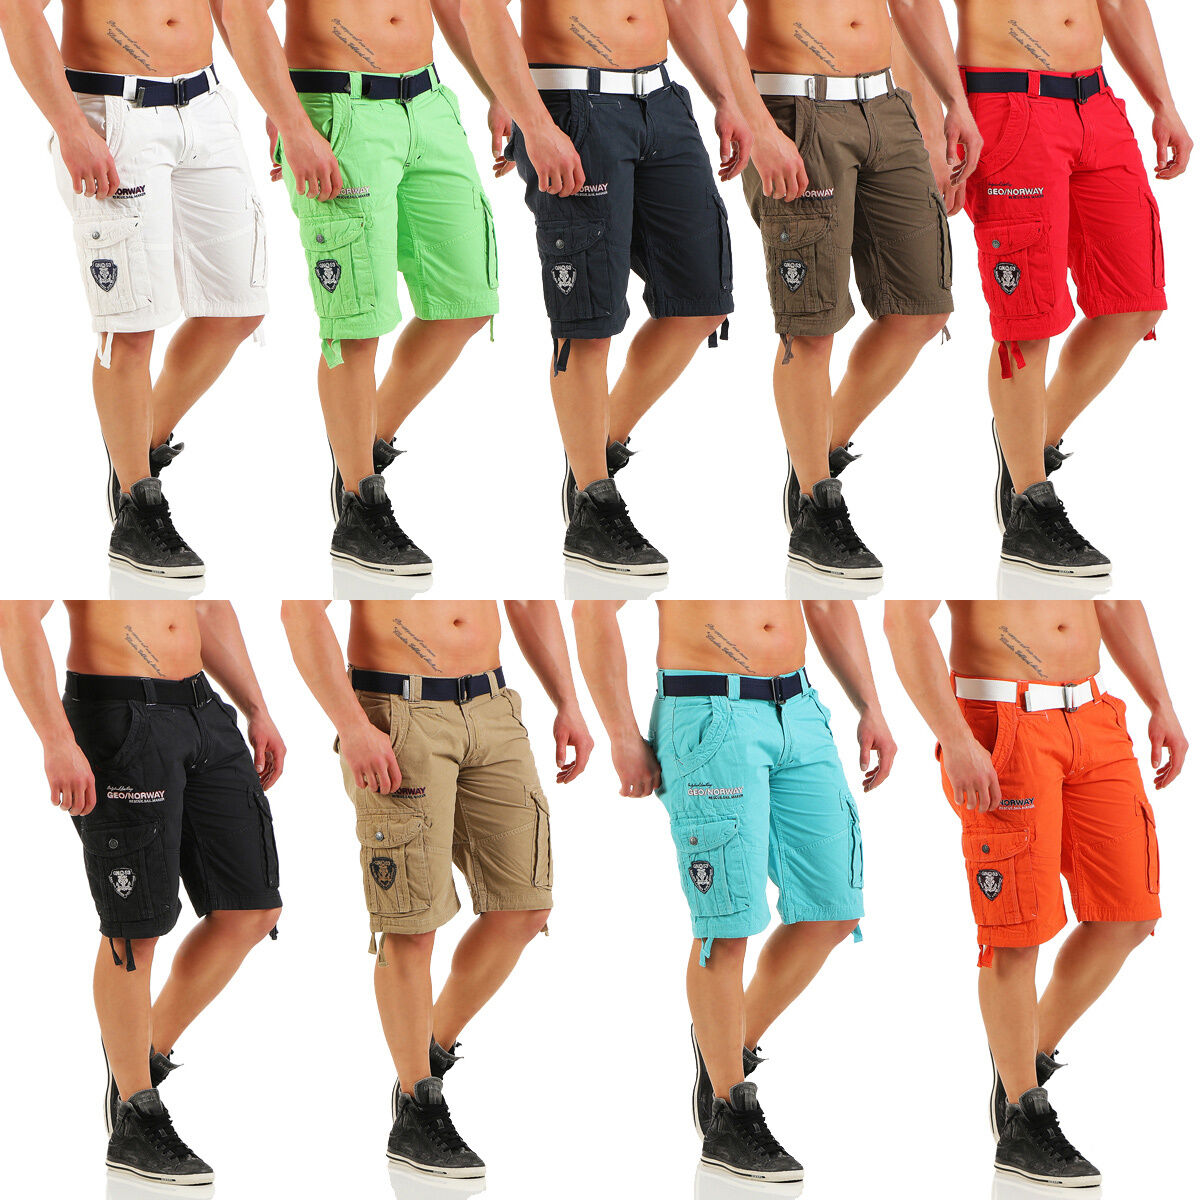 Geographical Norway Poudre short Summer Cargo short Men's Bermuda Shorts